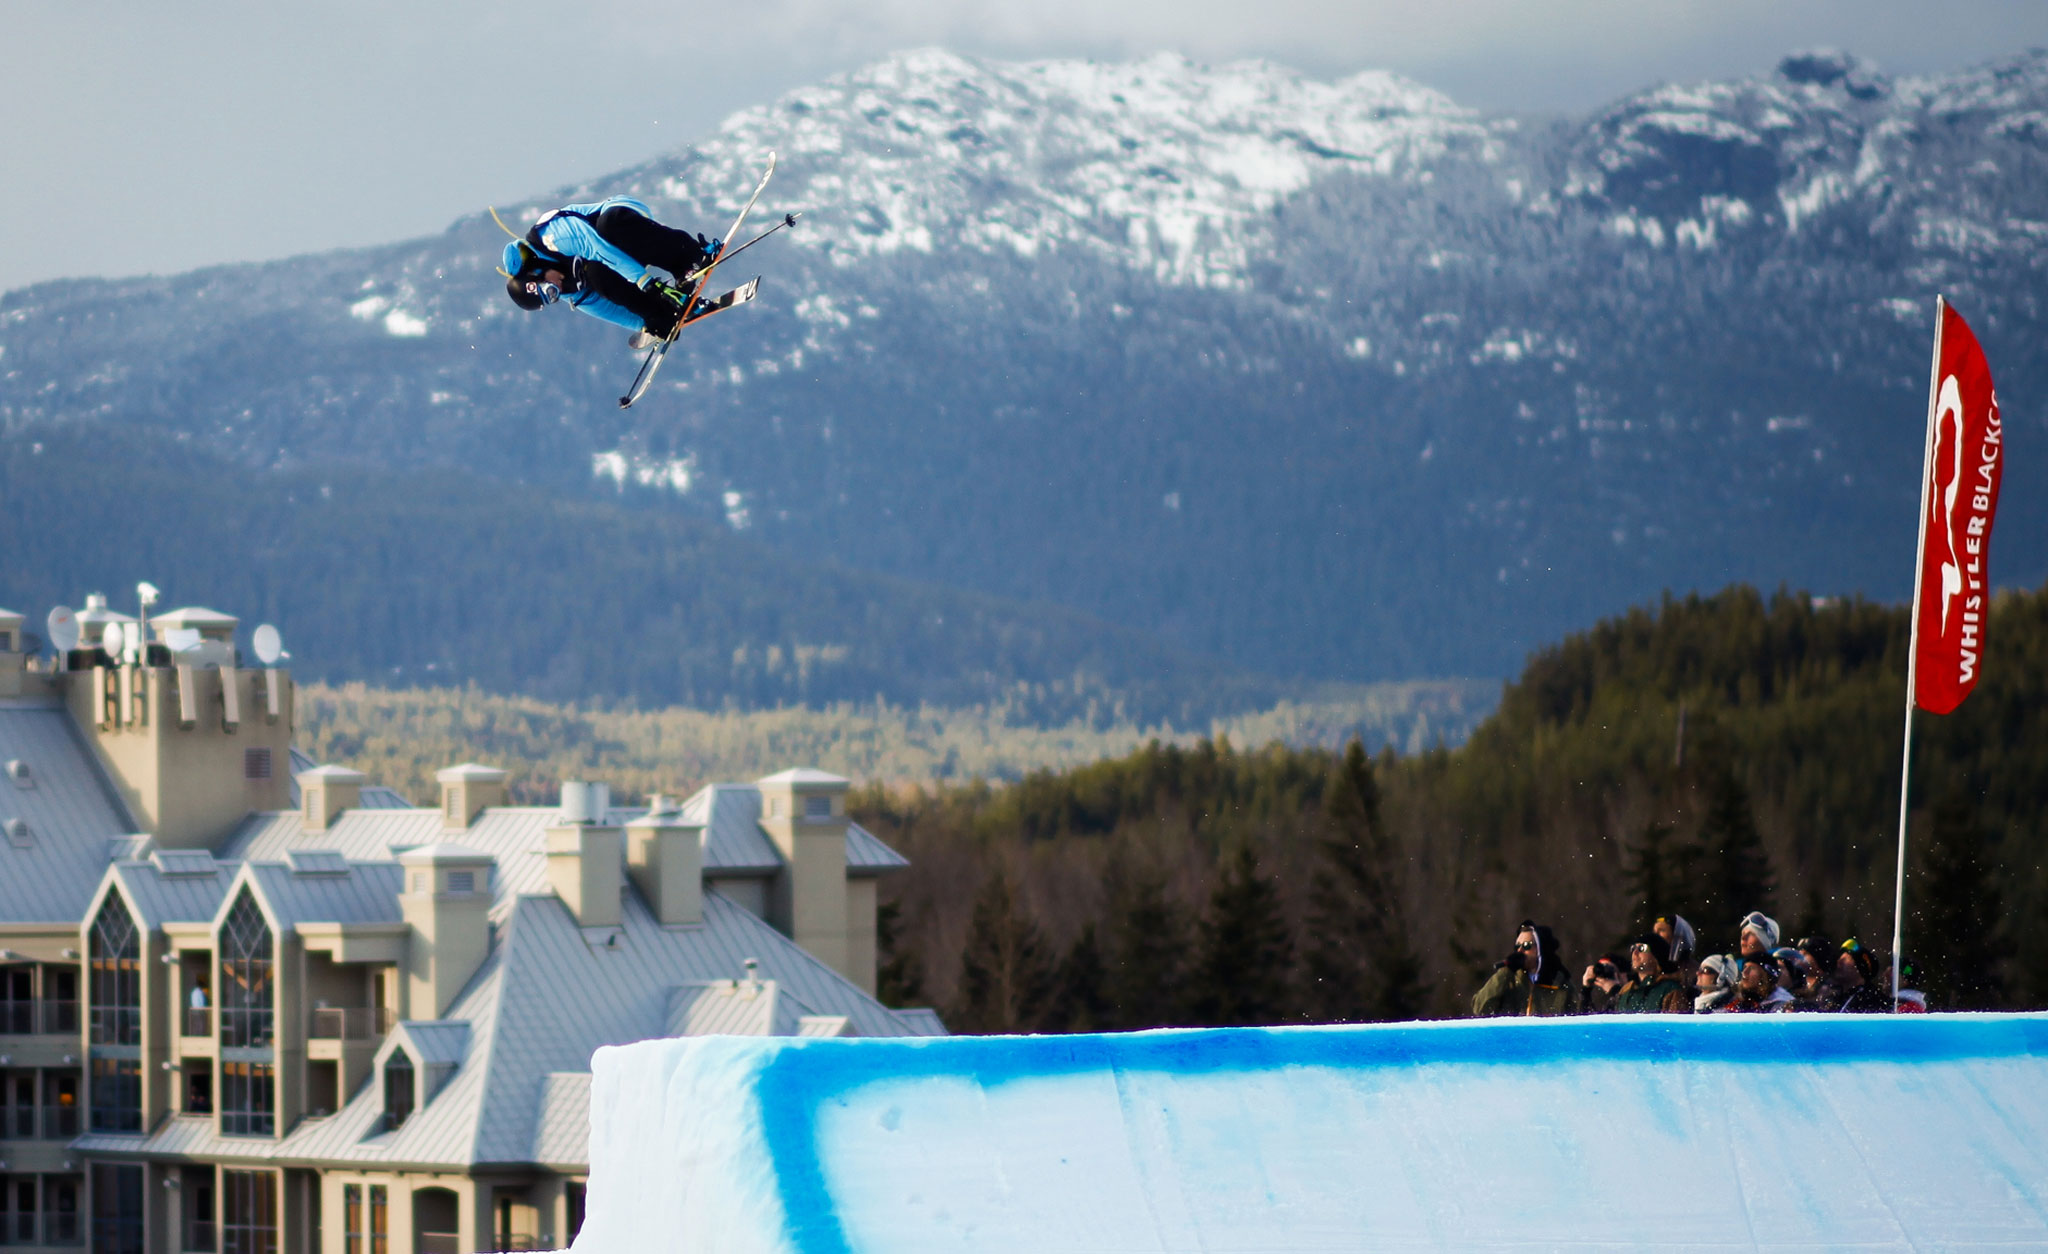 Vincent Gagnier won Saturday night's Big Air contest at the AFP World Championships in Whistler.